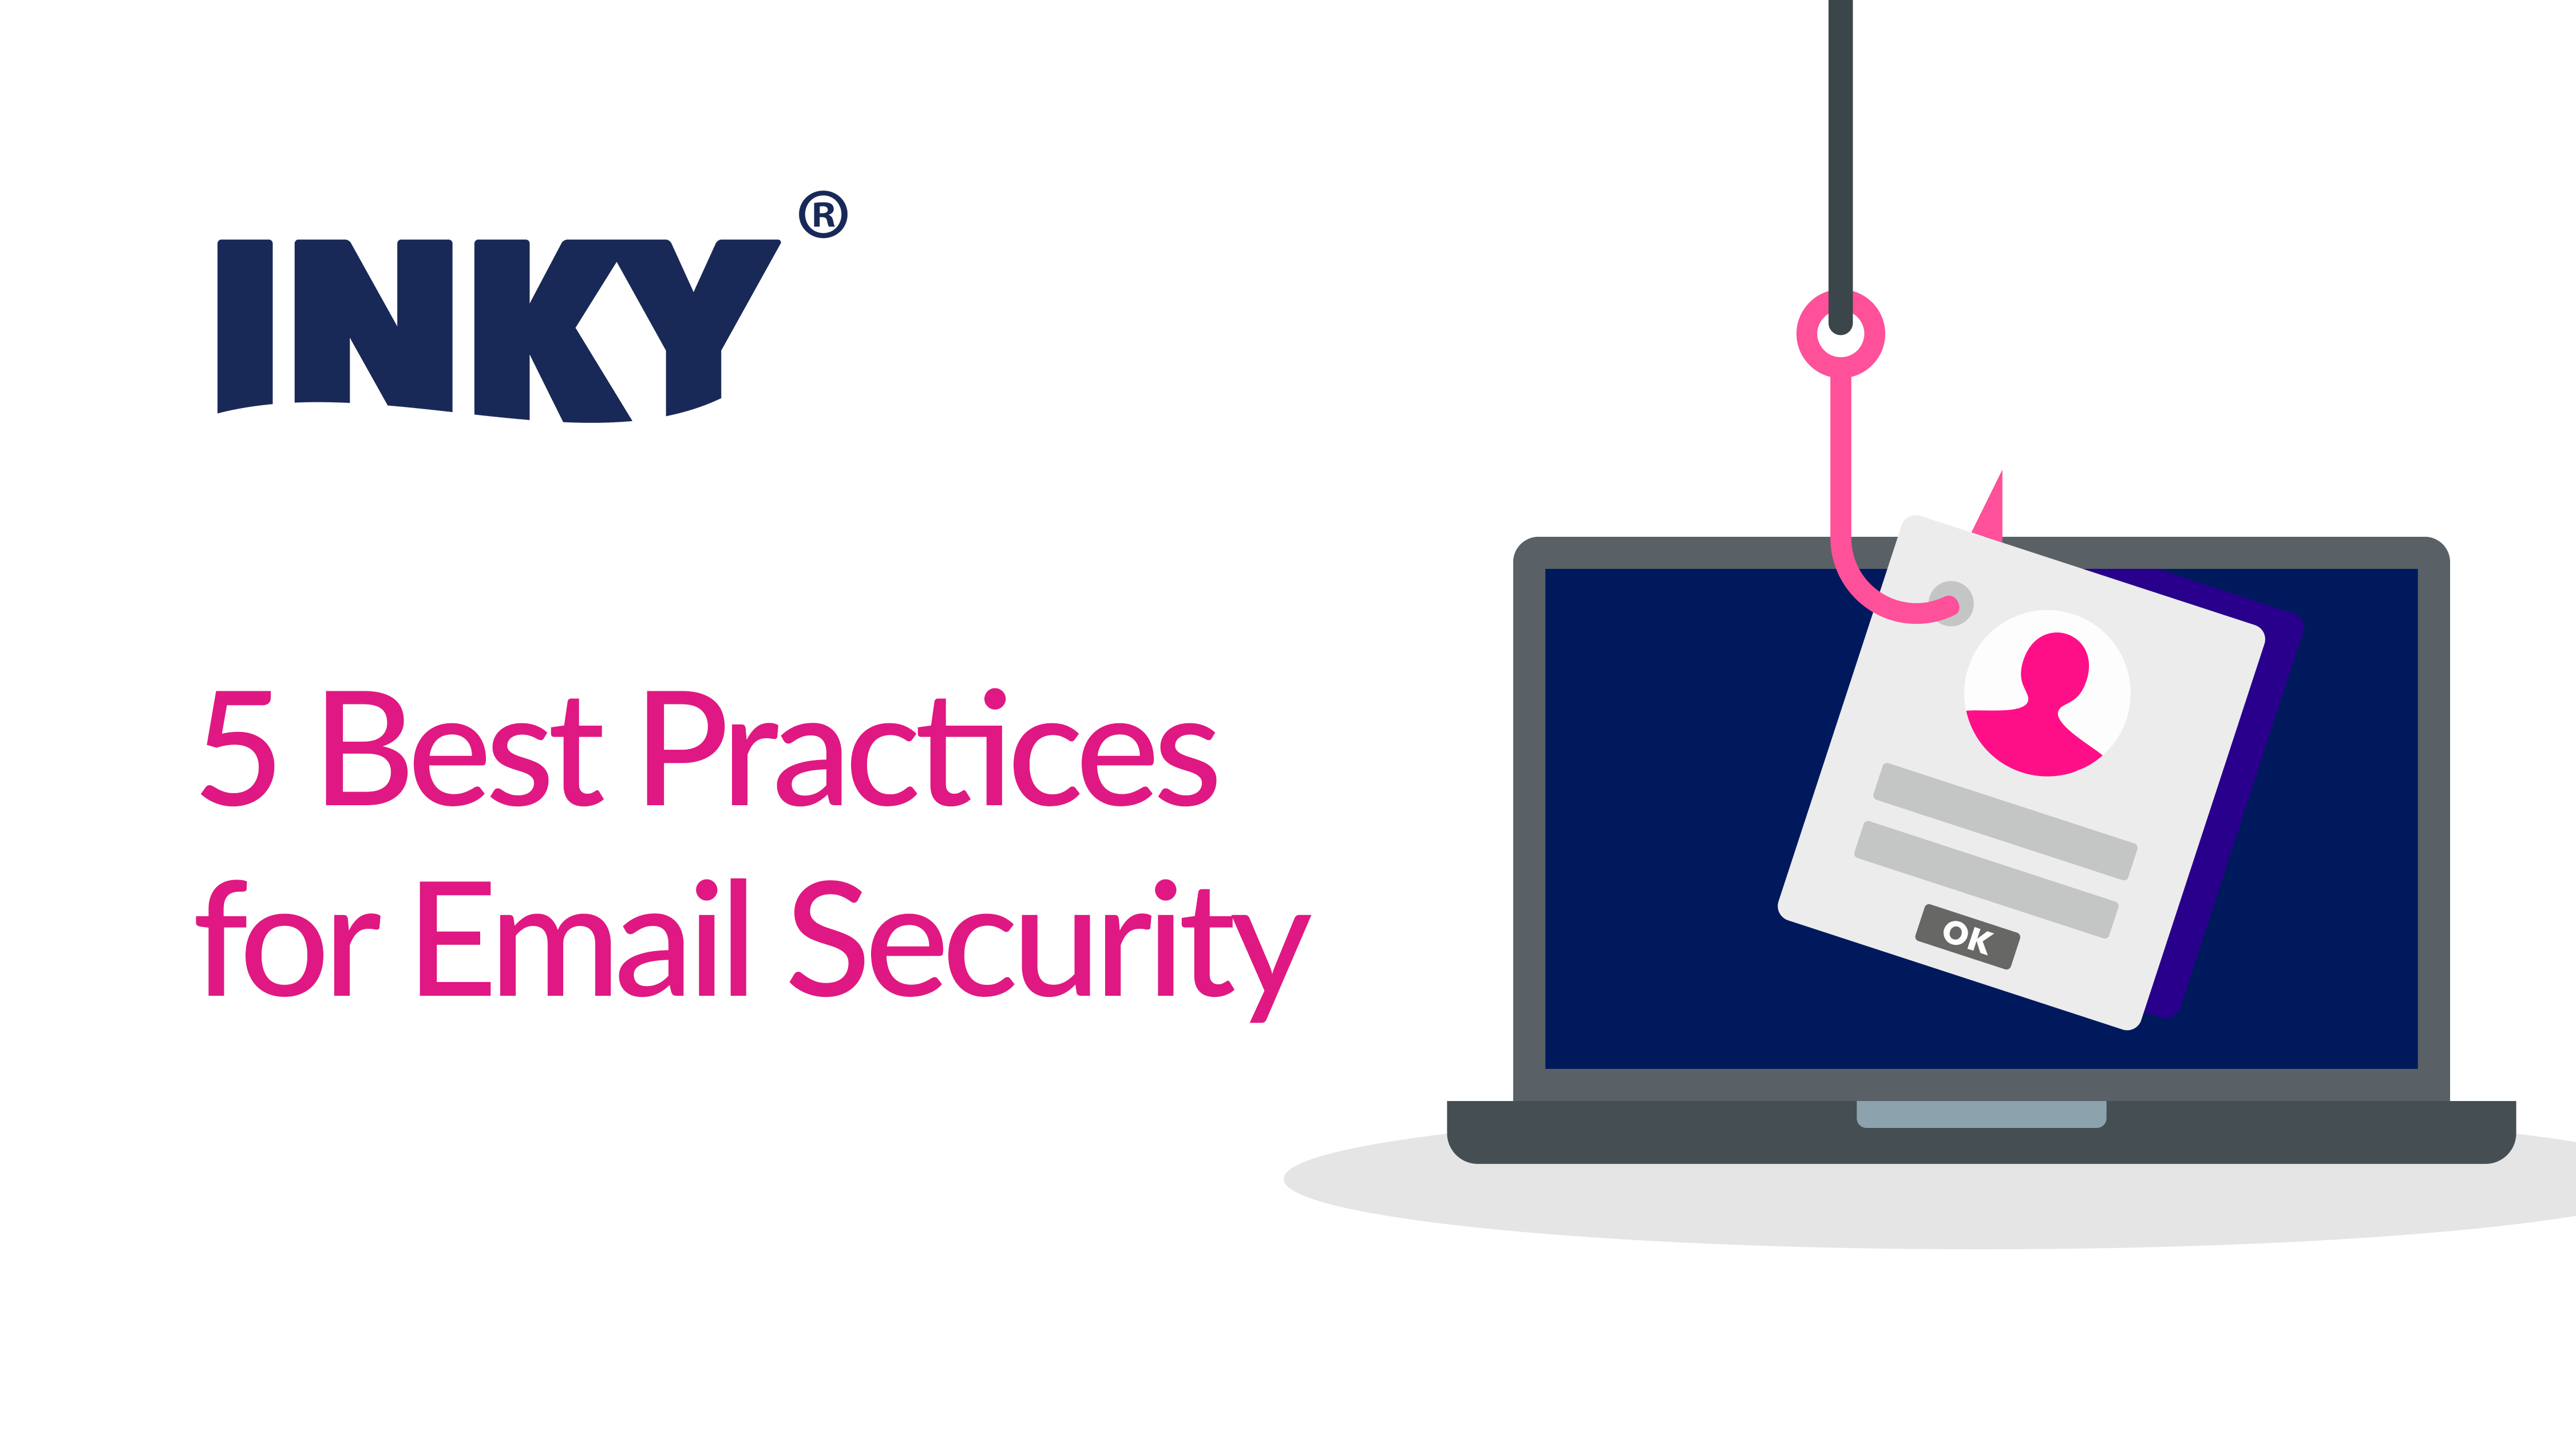 5 Best Practices for Email Security